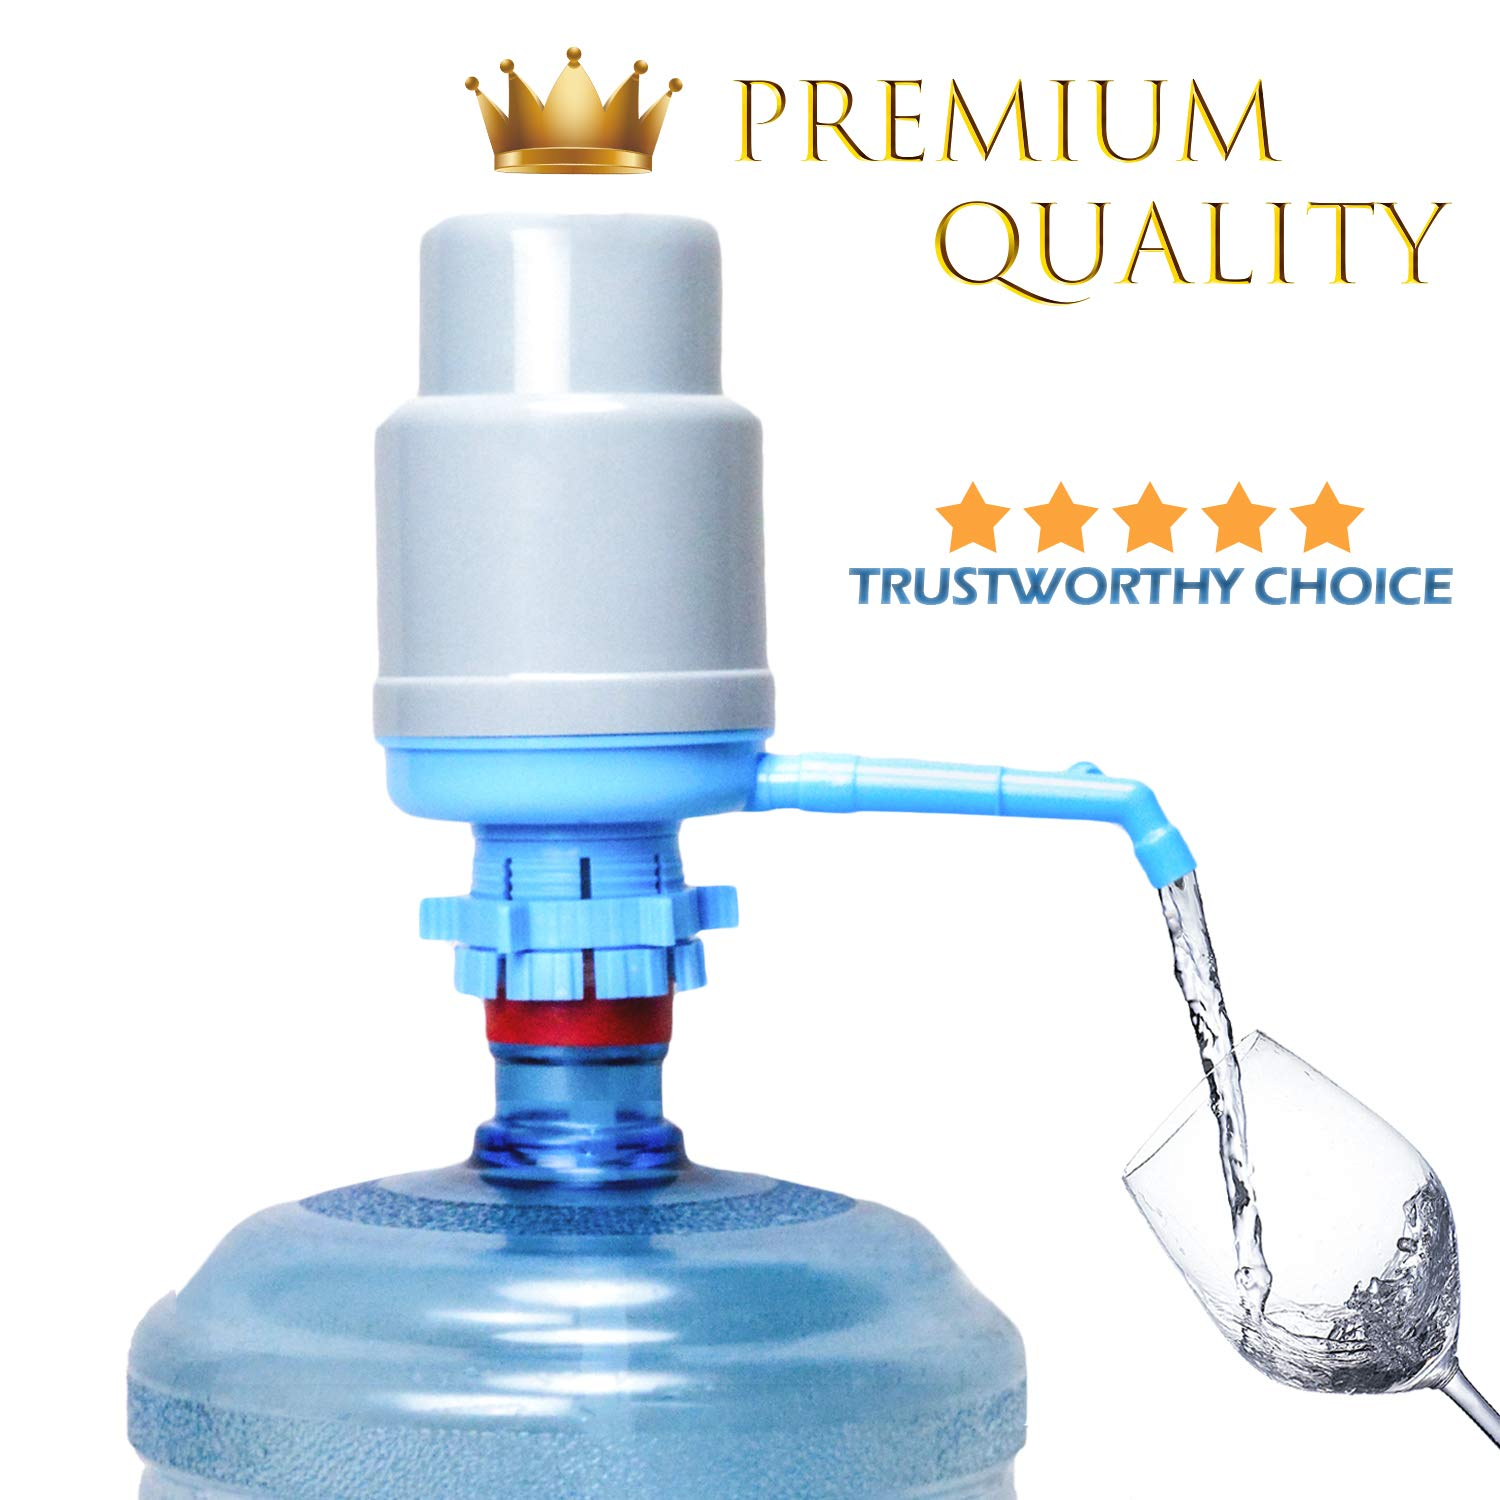 Water Bottles Pump Blue Gray Thickened Manual Hand Pressure Drinking Fountain Pressure Pump Water Press Pump with an Extra Short Tube and a Sanitary Cap Fits Most 2-6 Gallon Water Coolers